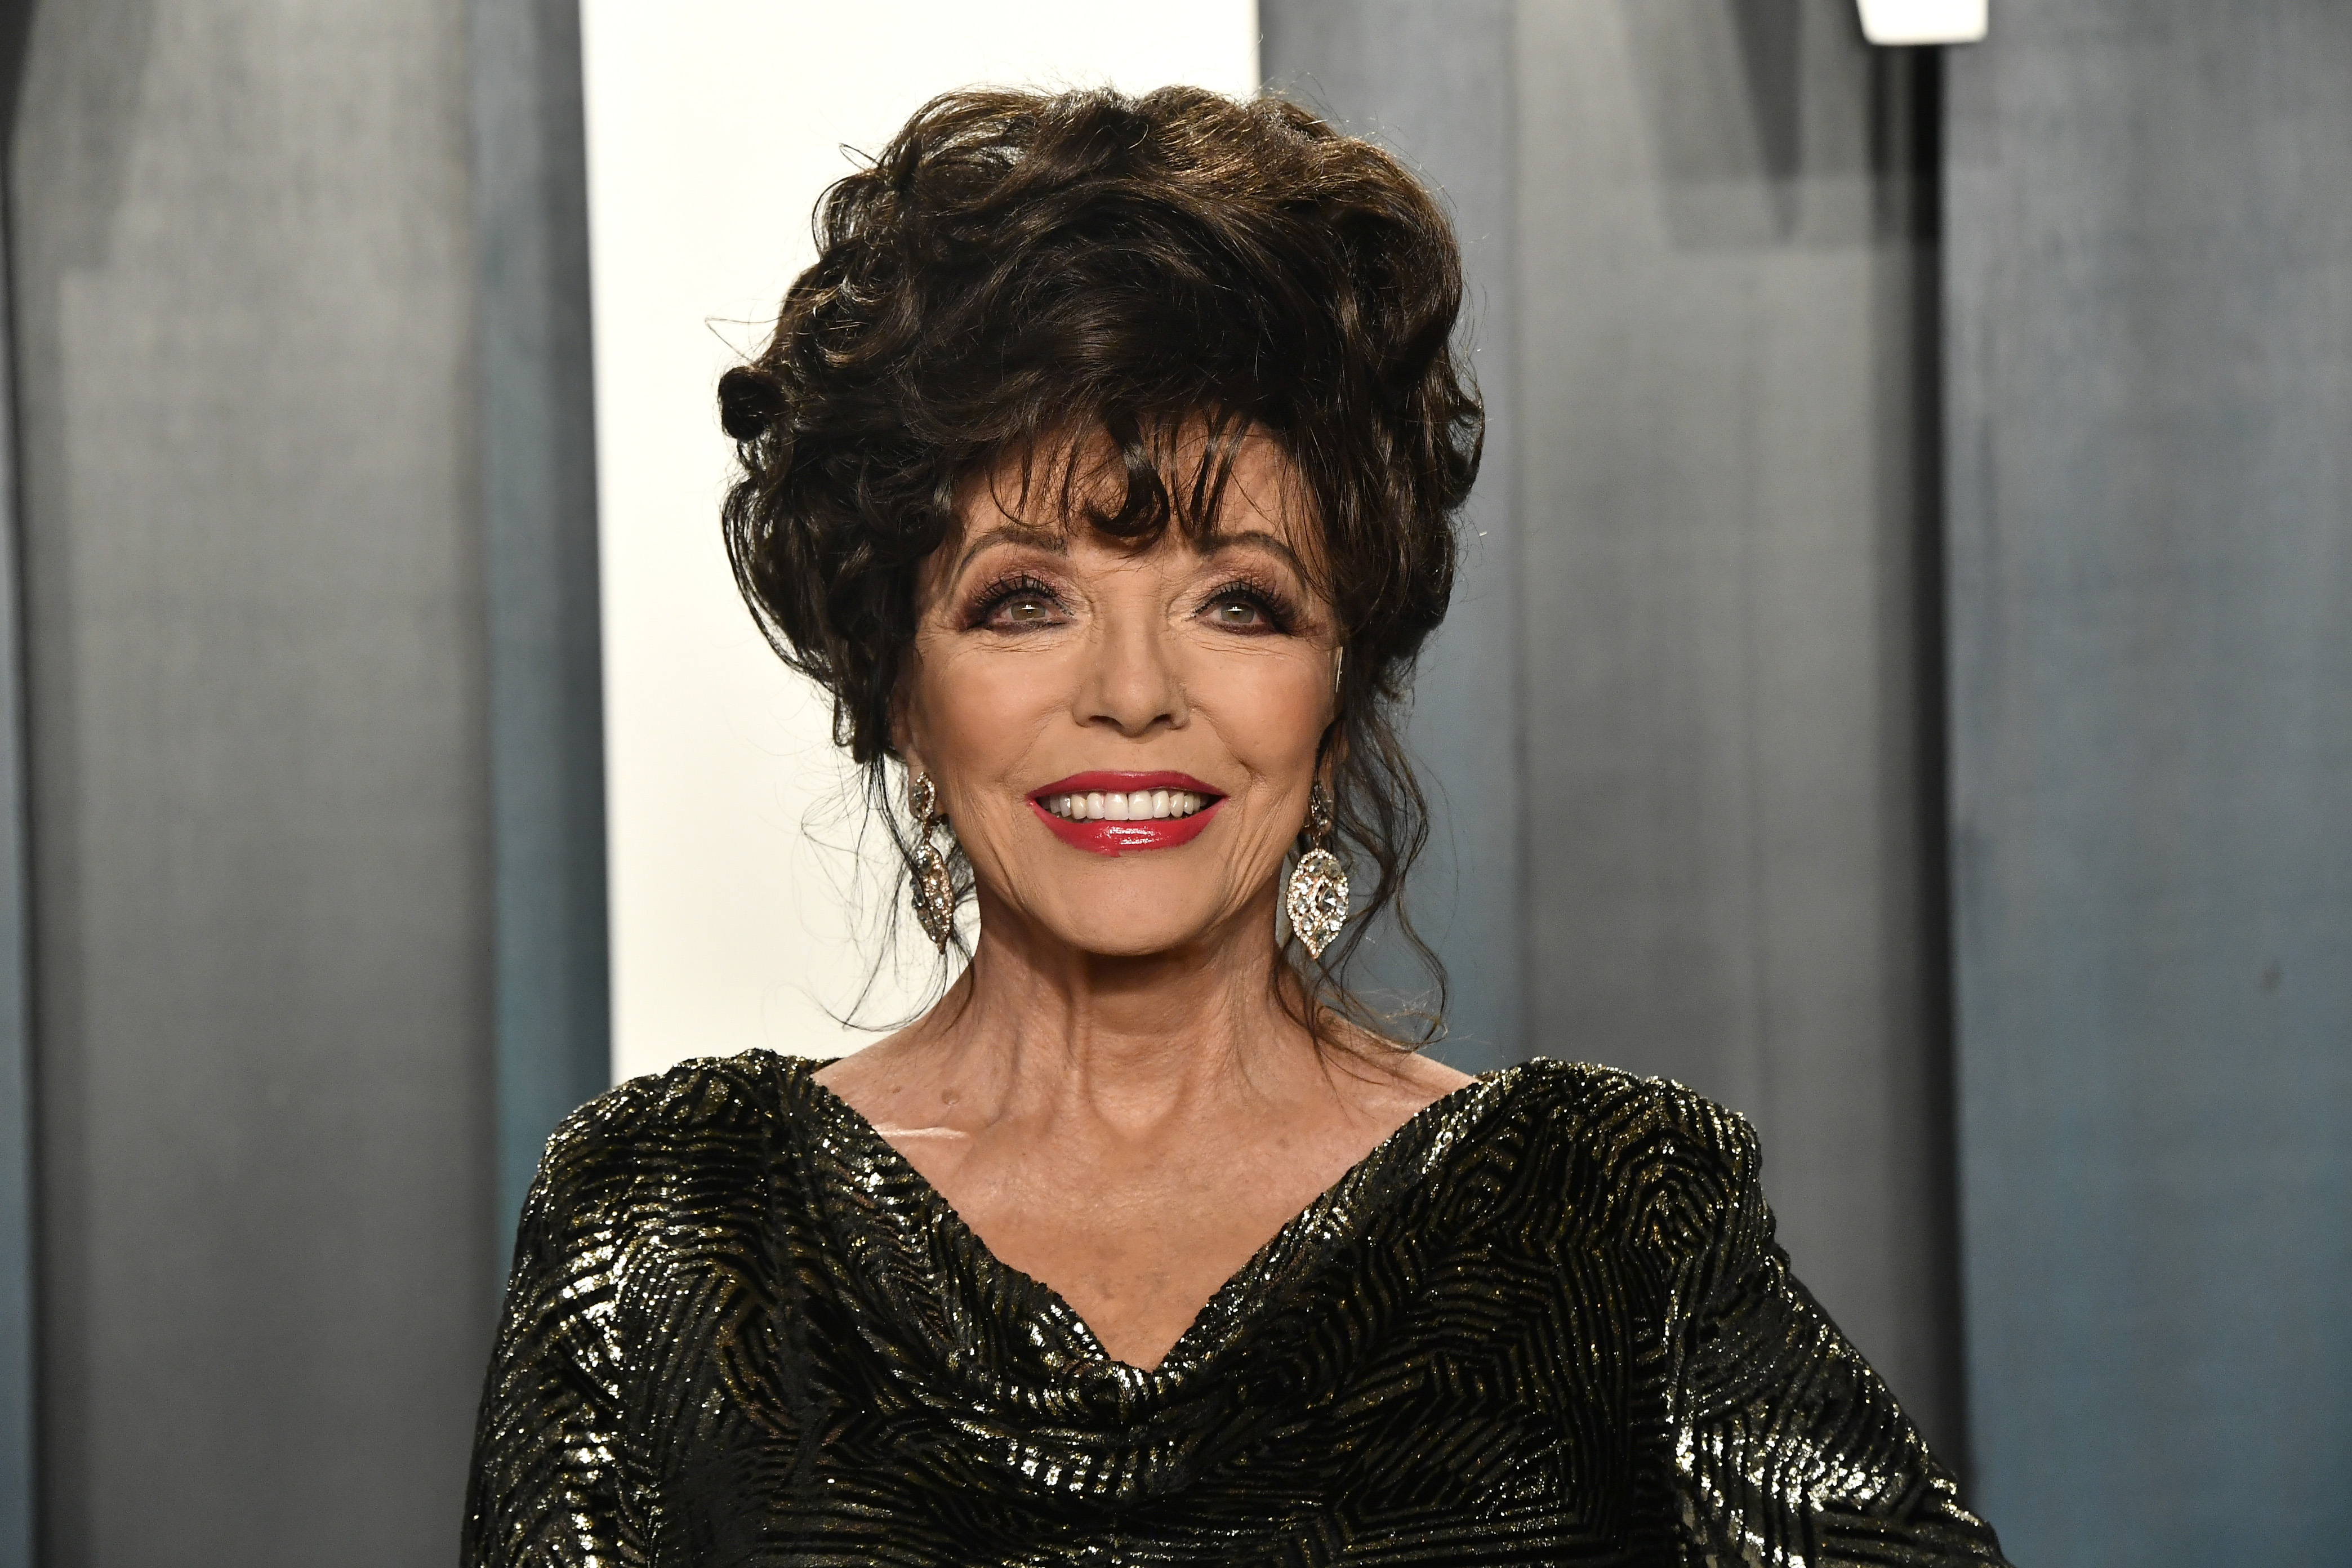 BEVERLY HILLS, CALIFORNIA - FEBRUARY 09: Joan Collins attends the 2020 Vanity Fair Oscar Party hosted by Radhika Jones at Wallis Annenberg Center for the Performing Arts on February 09, 2020 in Beverly Hills, California. (Photo by Frazer Harrison/Getty Images)